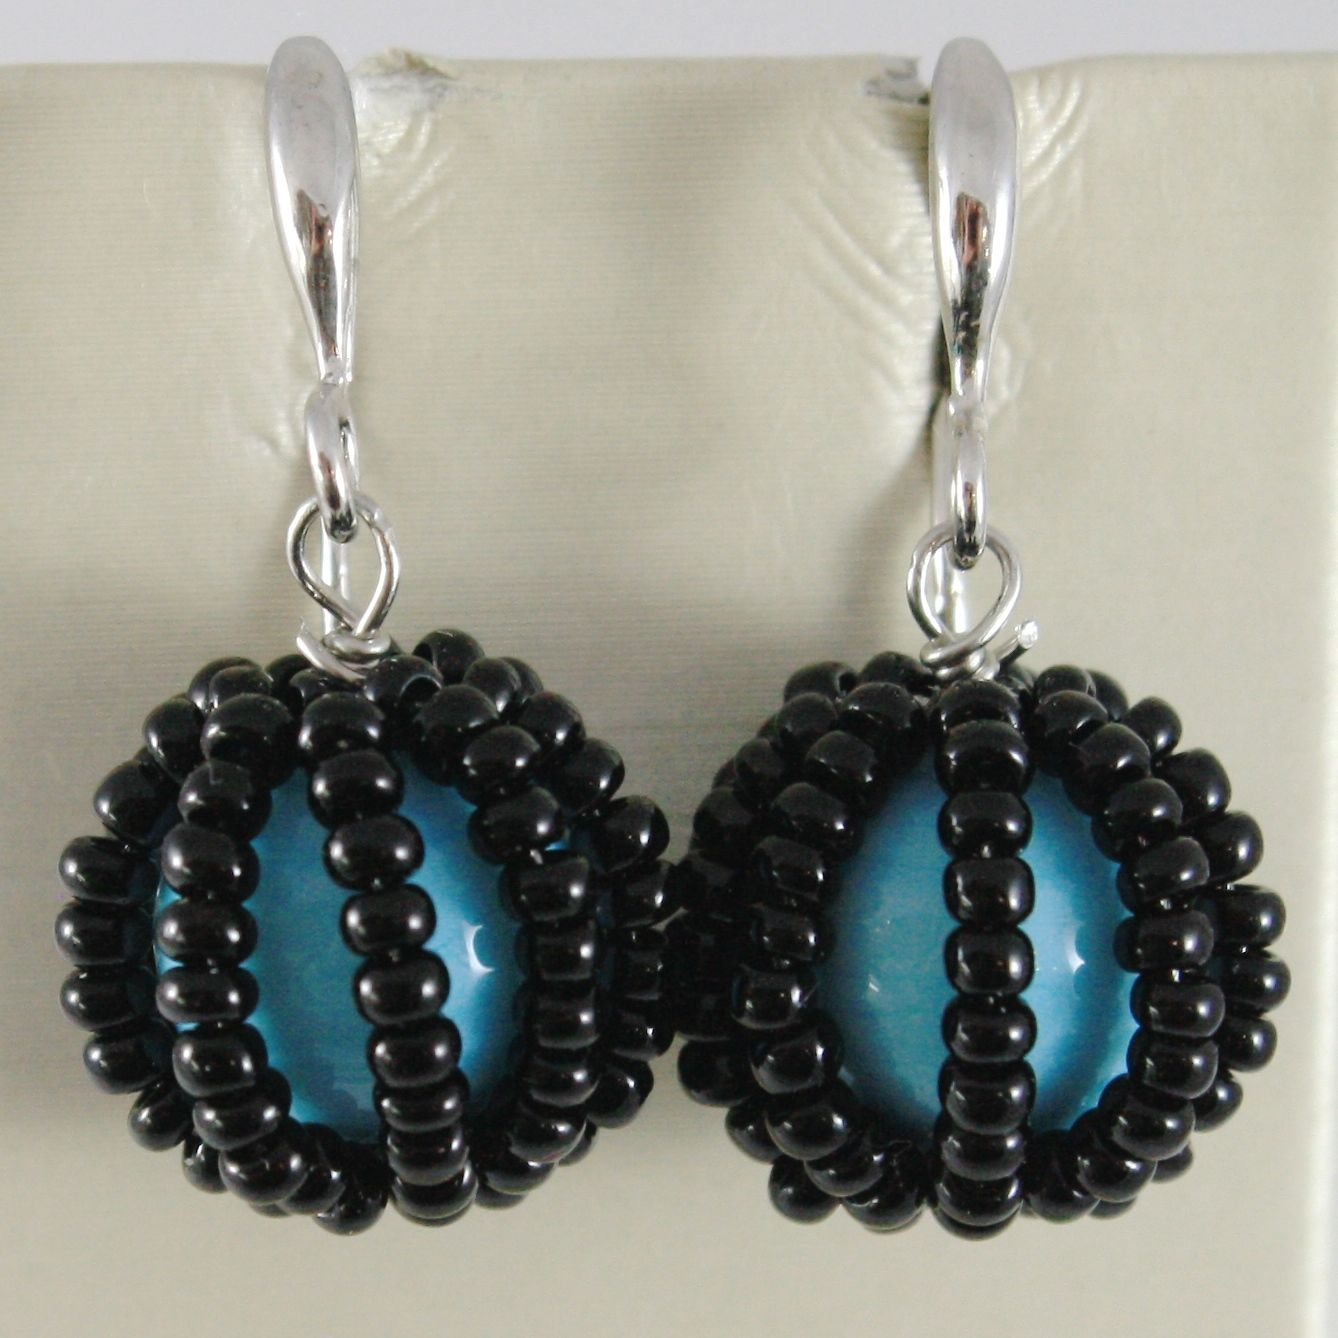 ANTICA MURRINA VENEZIA CORALLINA EARRINGS, LITTLE BLACK DISCS & TURQUOISE BALL